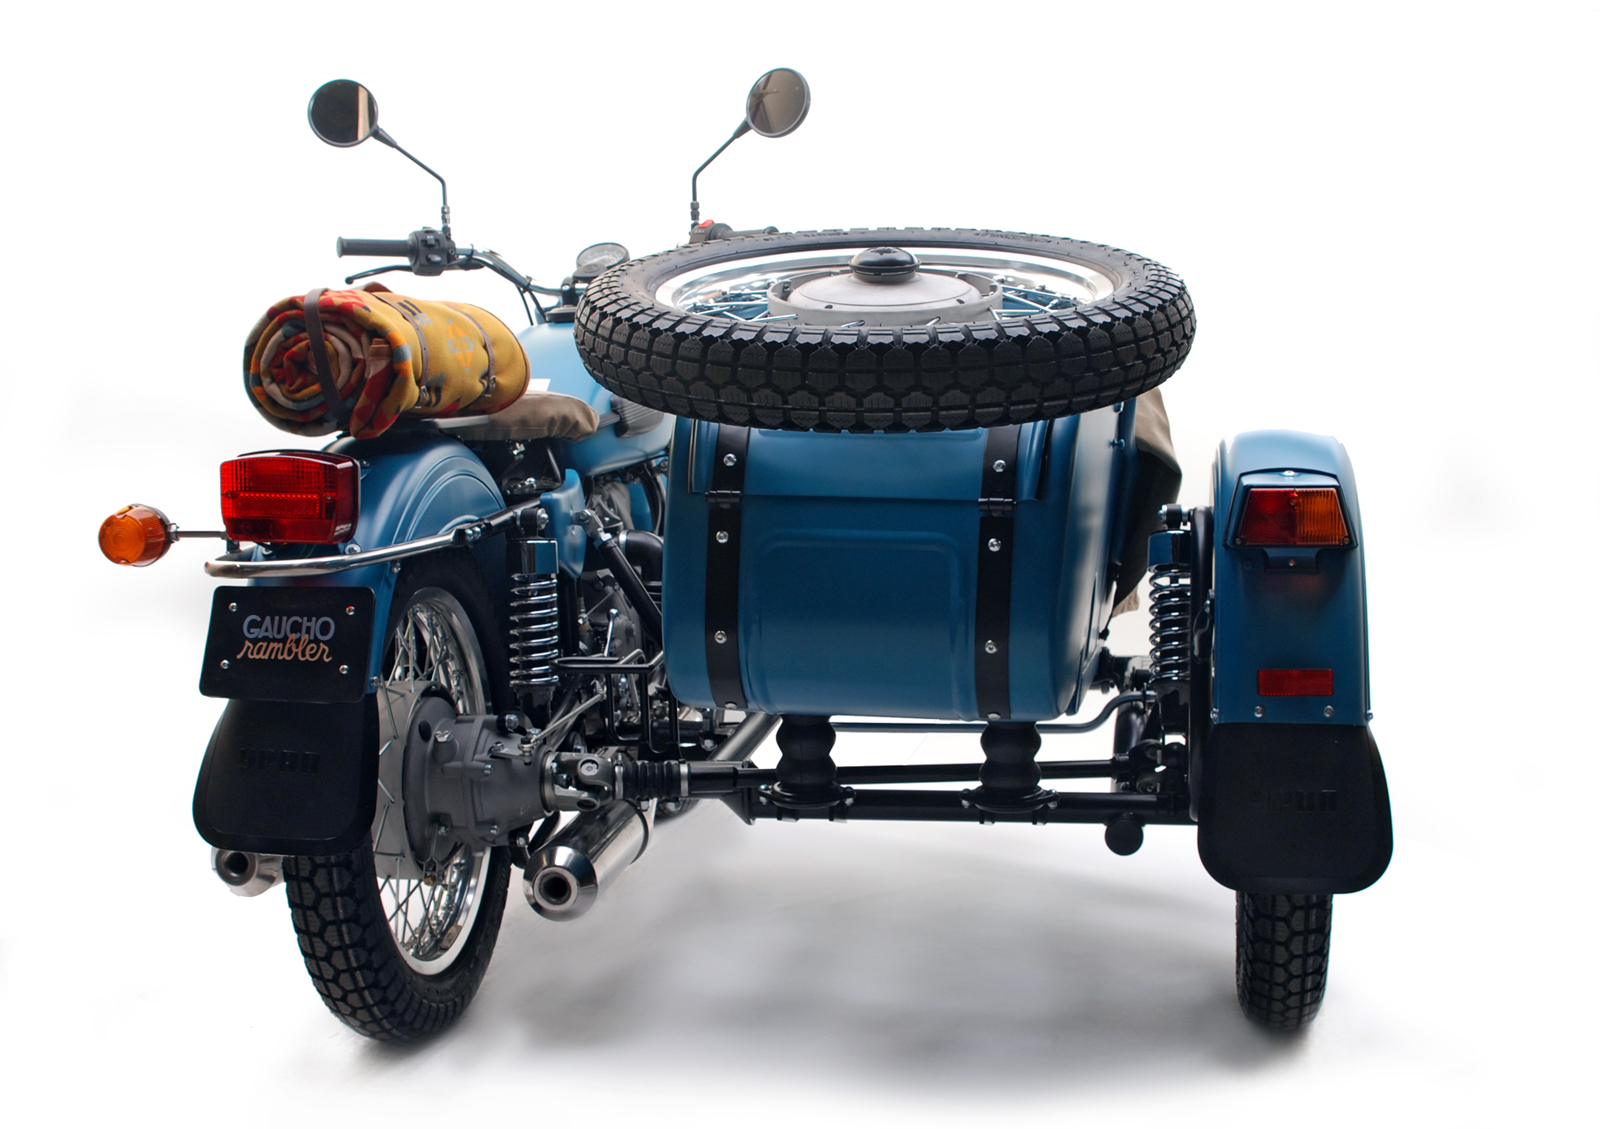 2013 Ural Gaucho Rambler Limited Edition Price Annouced Only 50 Wiring Diagram